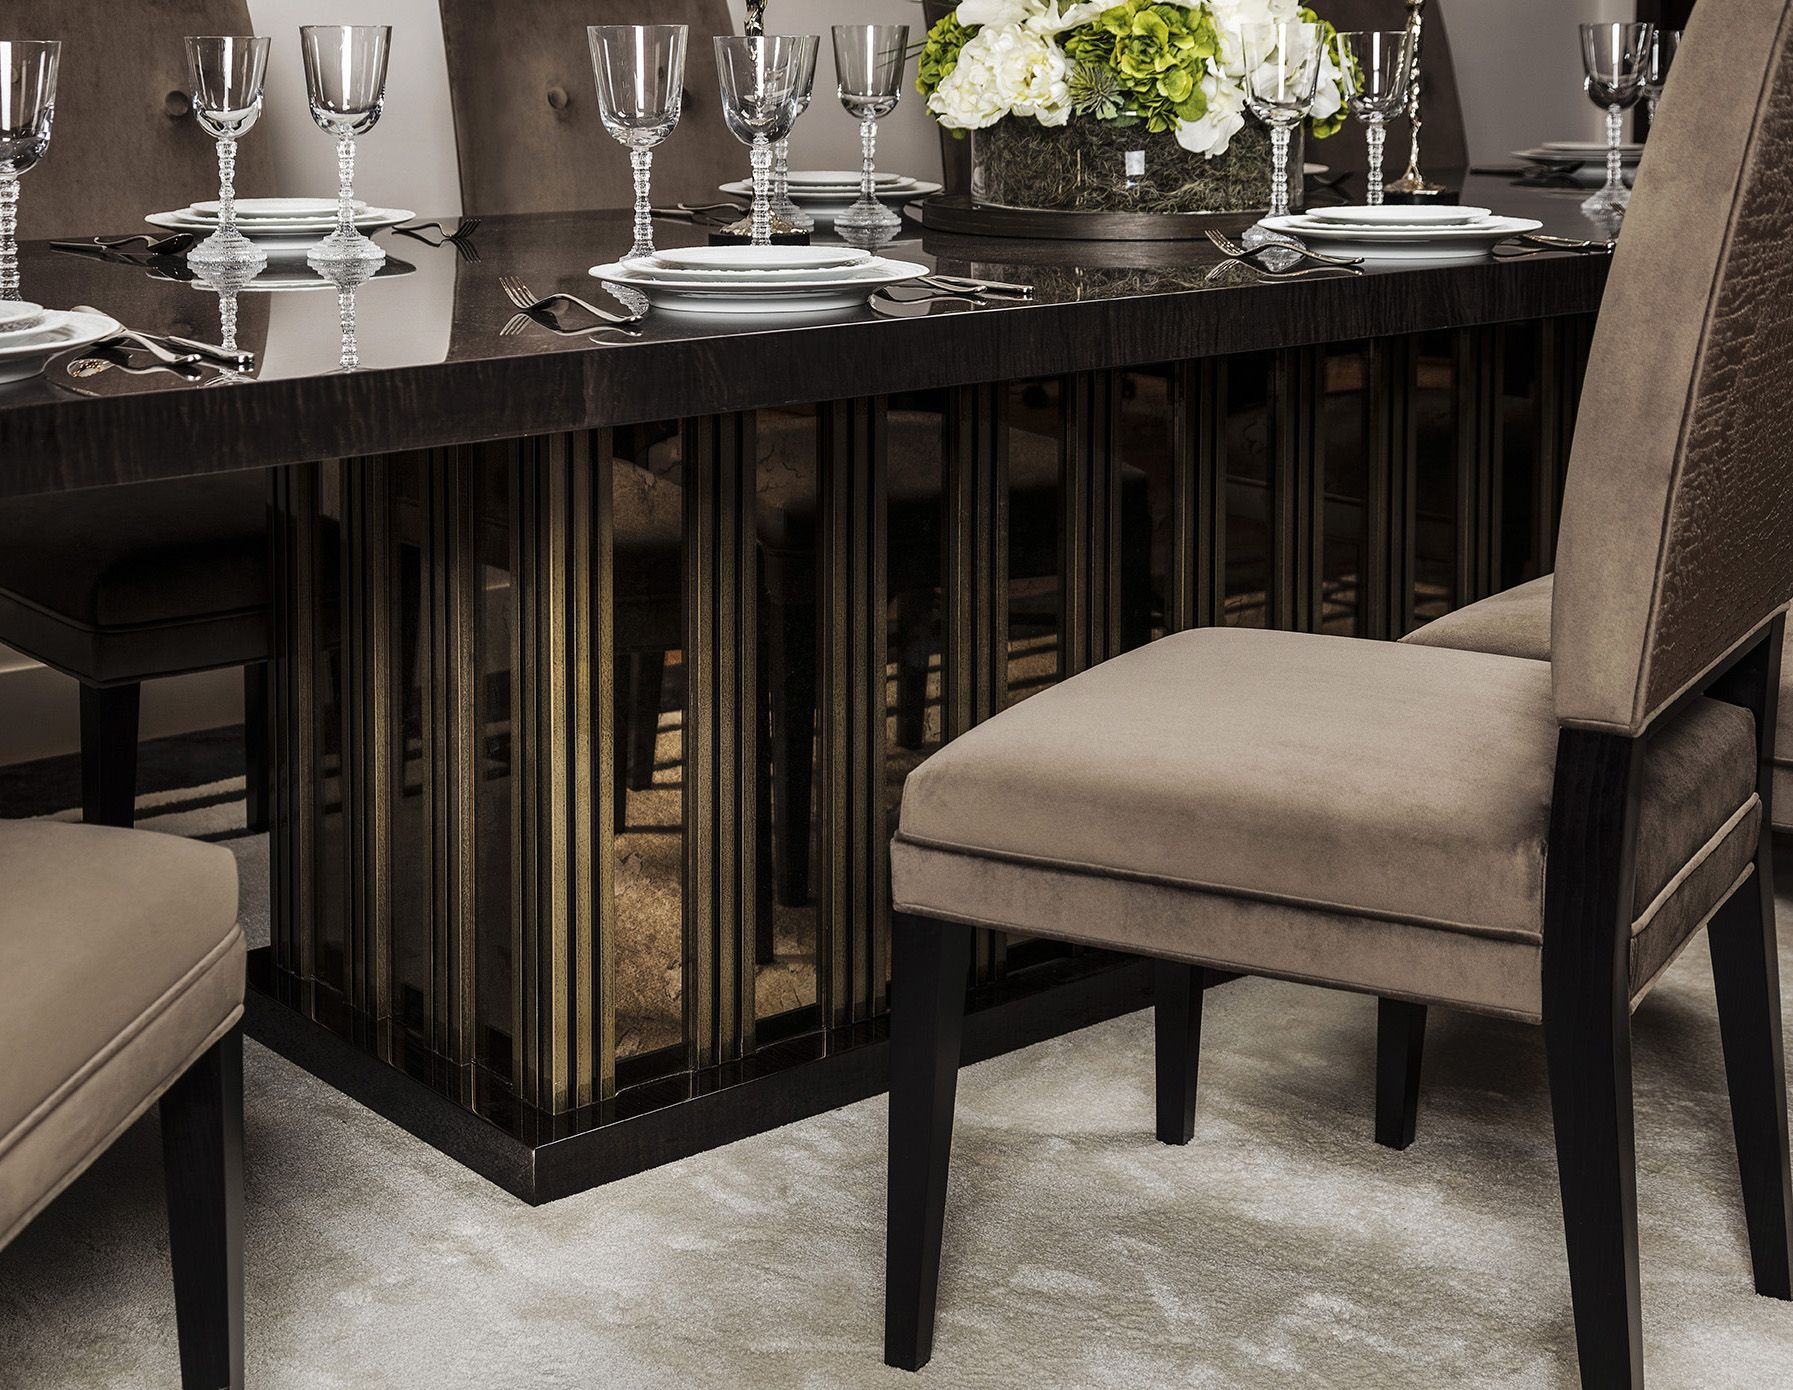 Molten Formal Dining Table A Superbly Luxurious Large Dining Table That Accommodates Up To 12 Guests Topped With Gorgeous High Gloss Sycamore Veneer Comedores